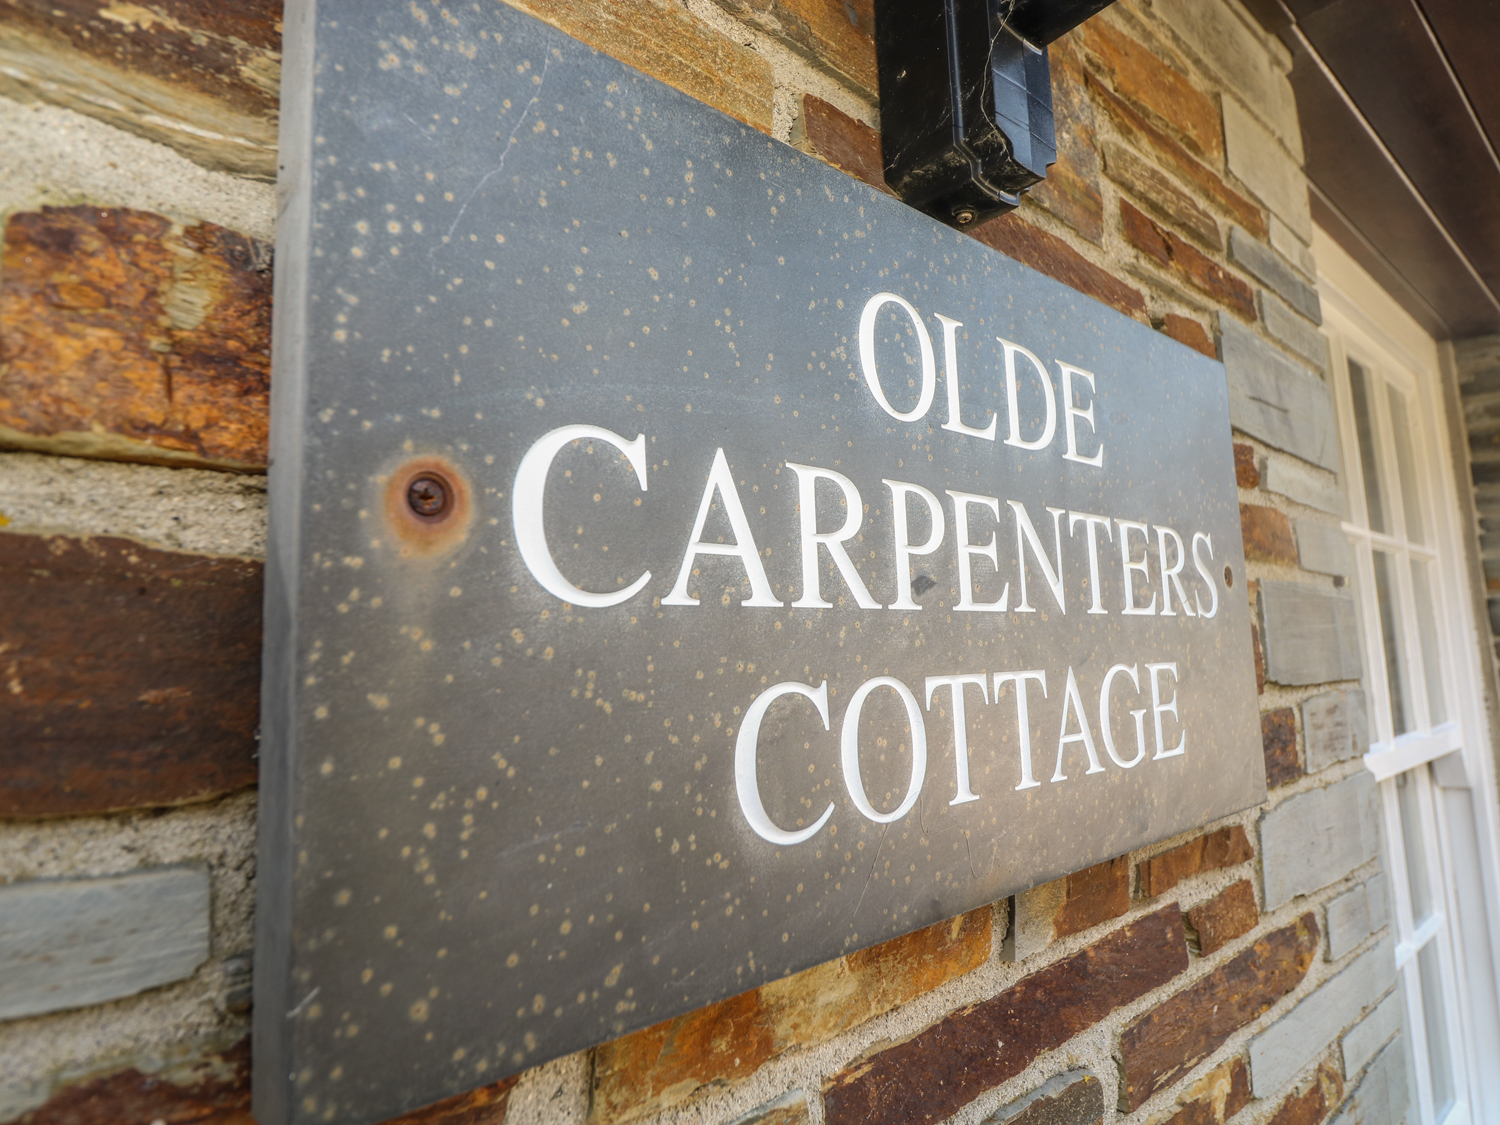 Olde Carpenters Cottage